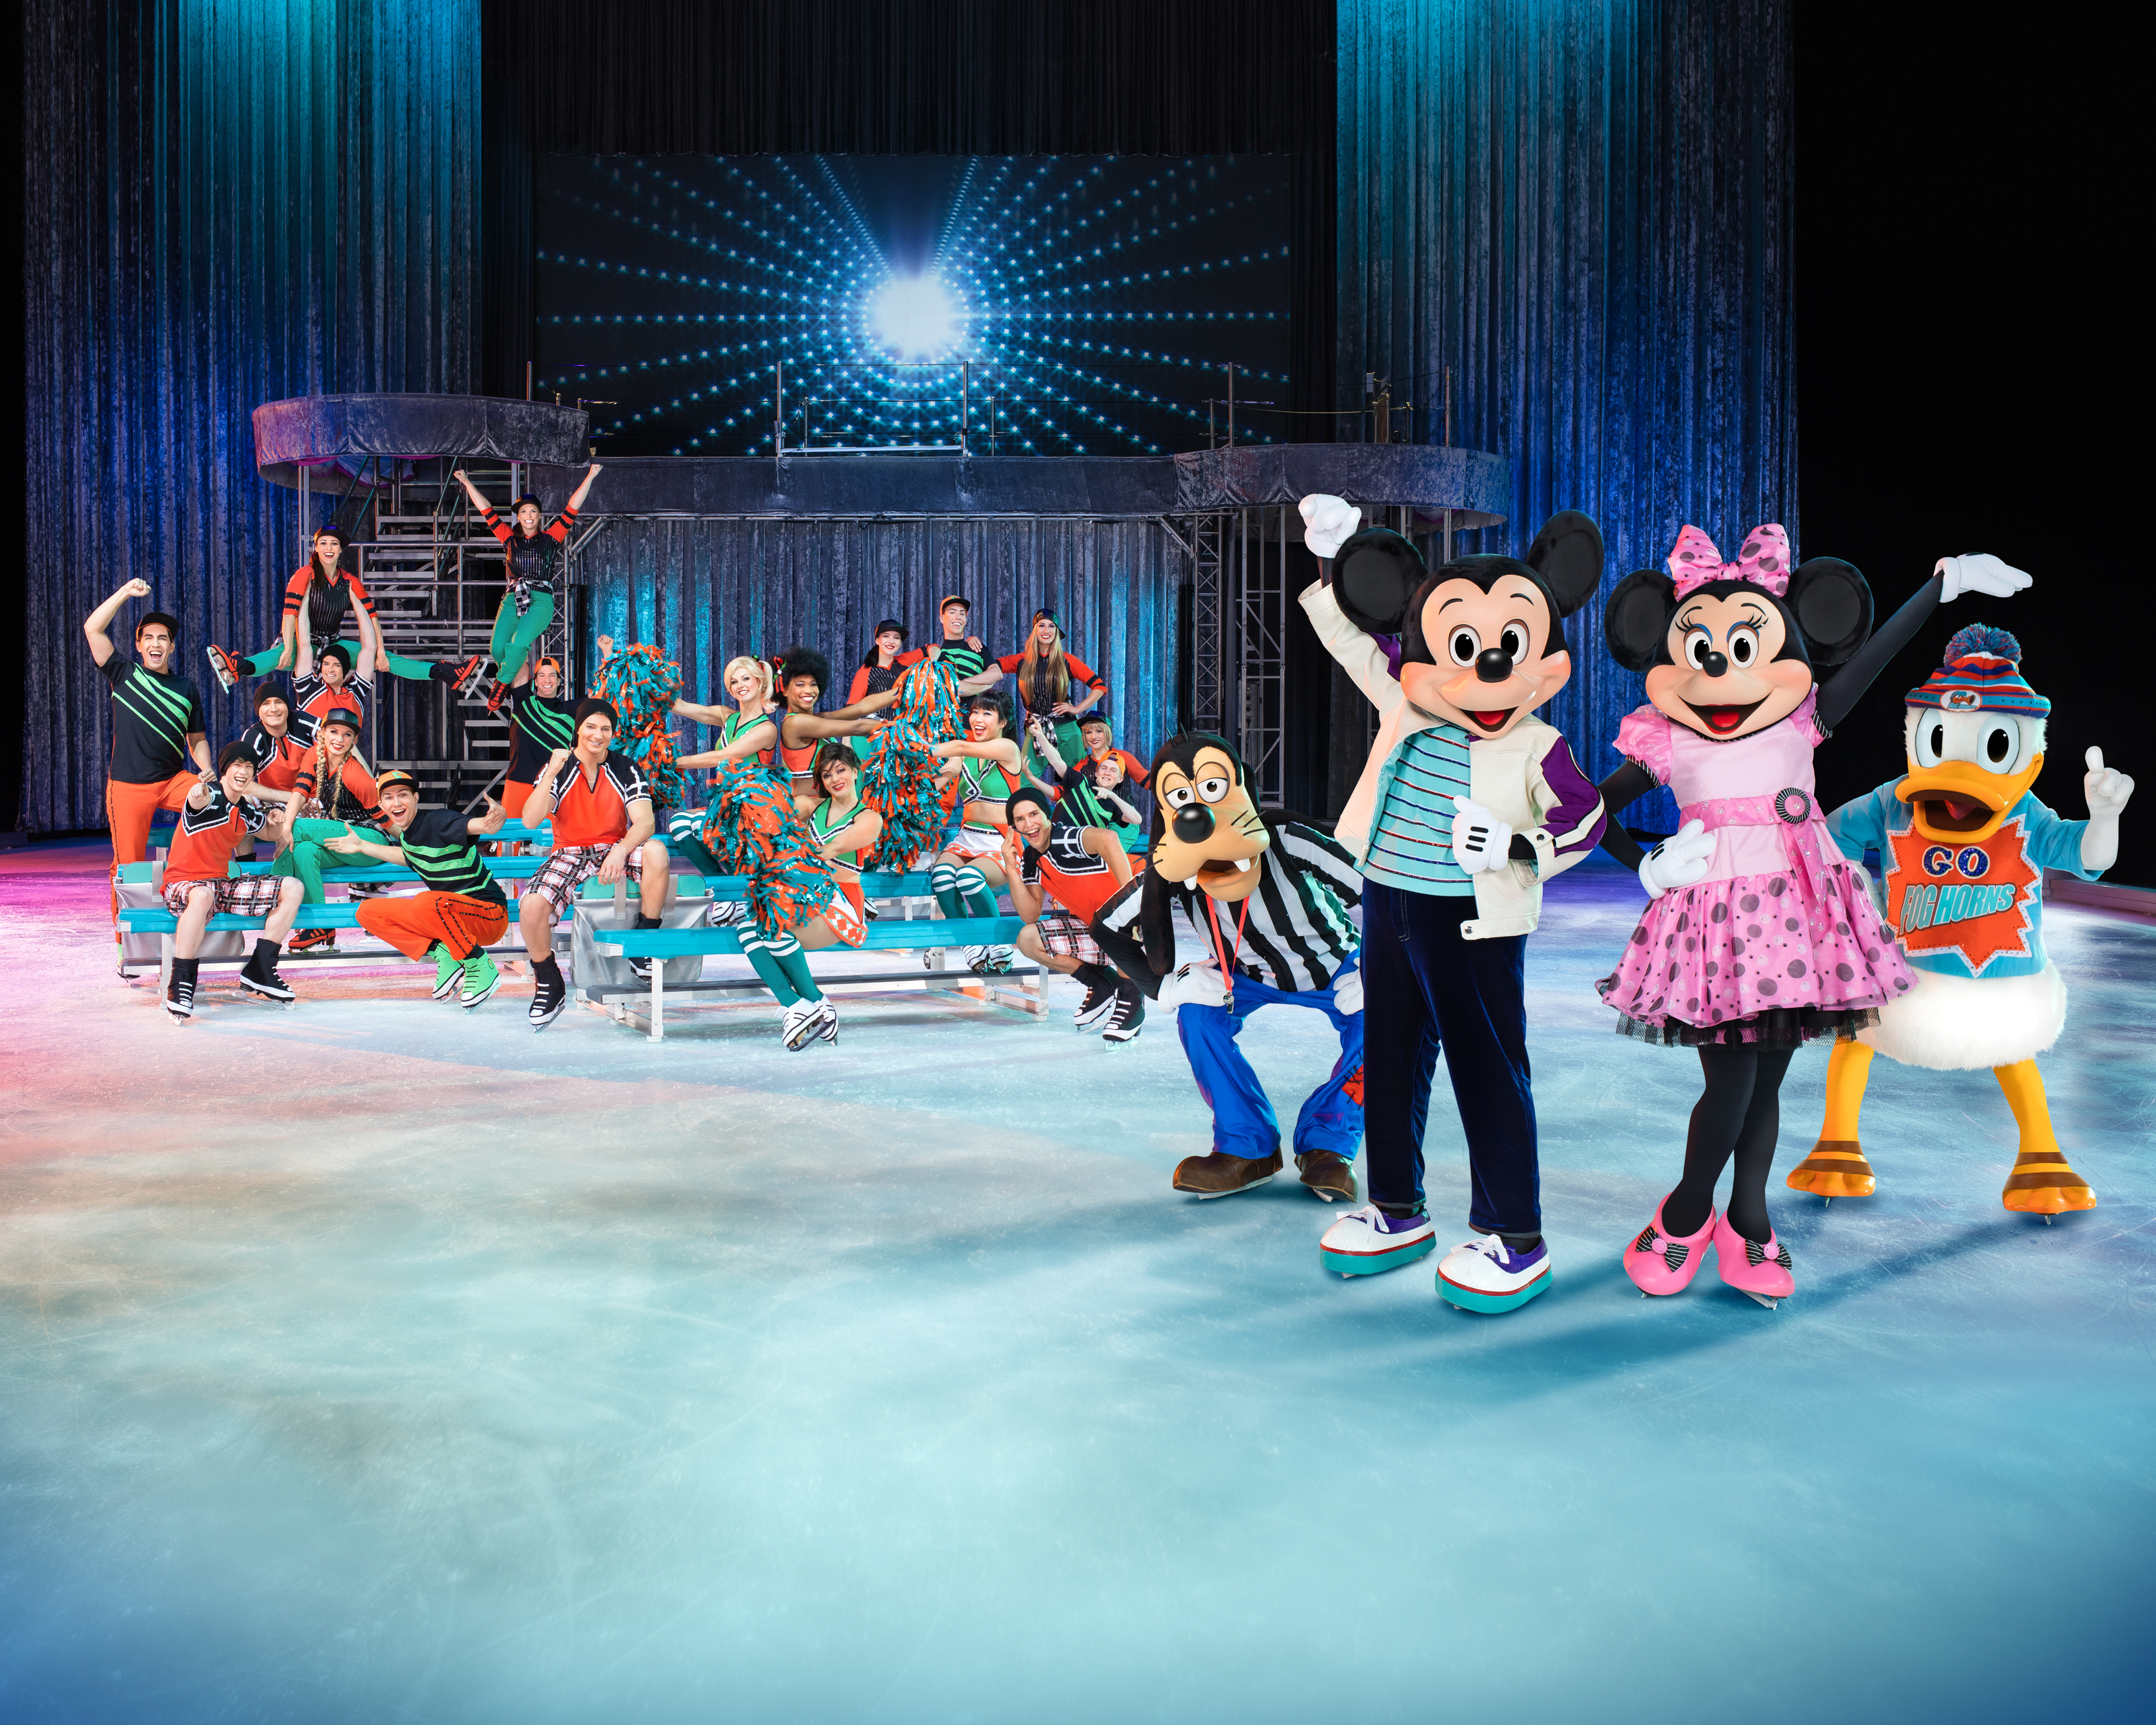 All Tickets Disney on Ice Reach for The Stars at Bb&T Center and Aaa for $16 This code offers you All Tickets Disney on Ice Reach for The Stars at Bb&T Center and Aaa for $ Discover amazing deals that will save you money, only from.